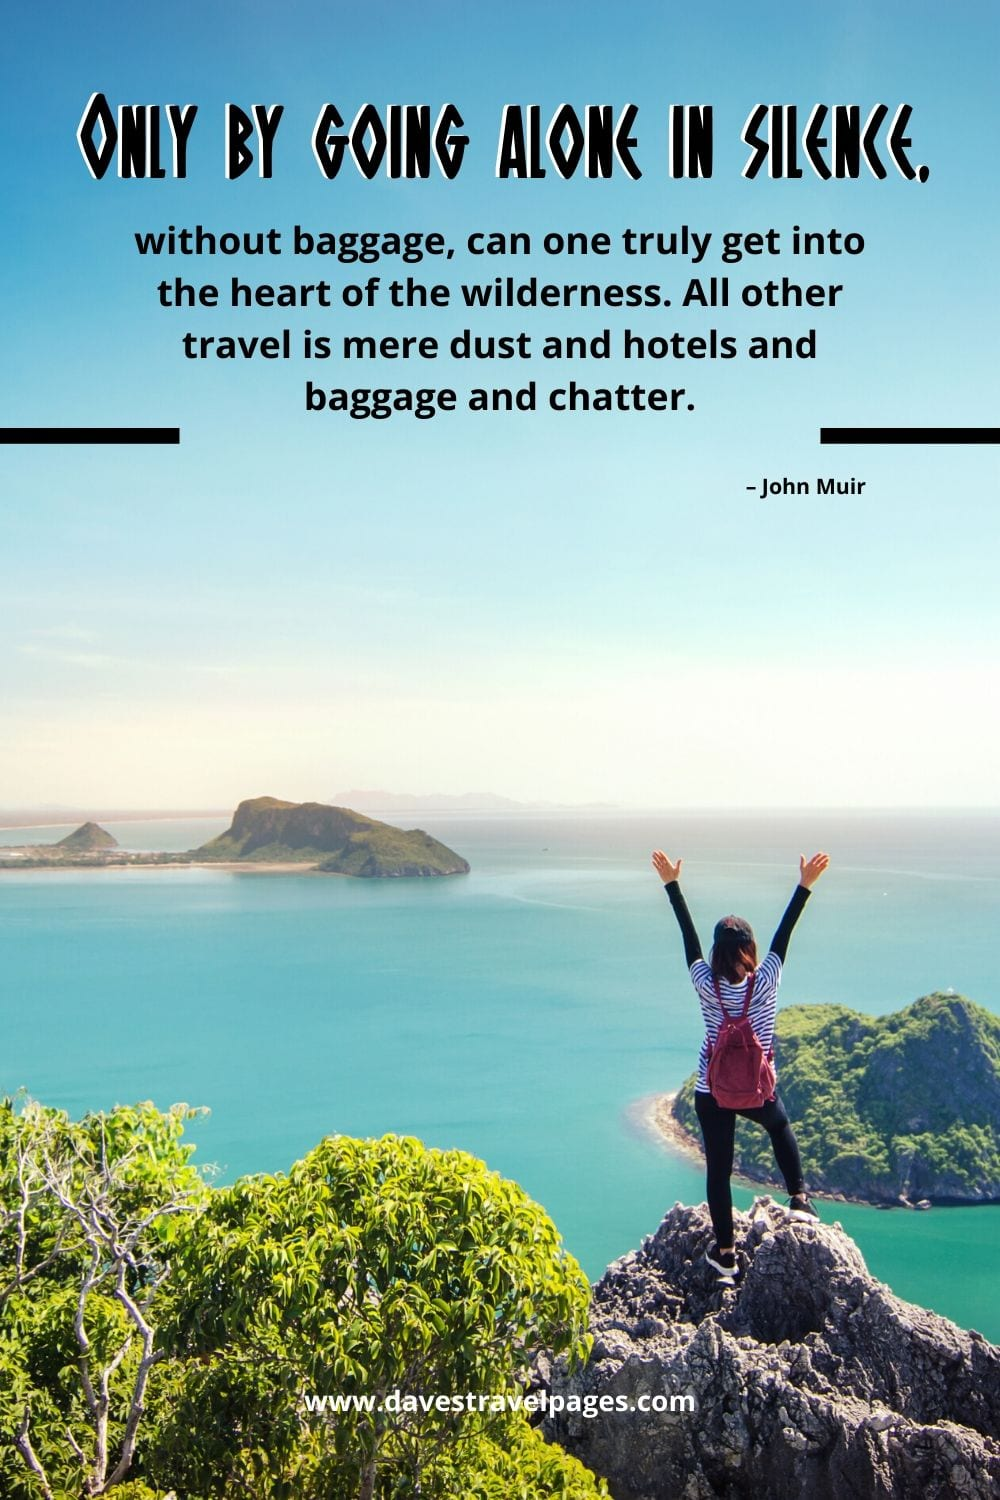 """Wilderness quotes: """"Only by going alone in silence, without baggage, can one truly get into the heart of the wilderness. All other travel is mere dust and hotels and baggage and chatter."""" – John Muir"""